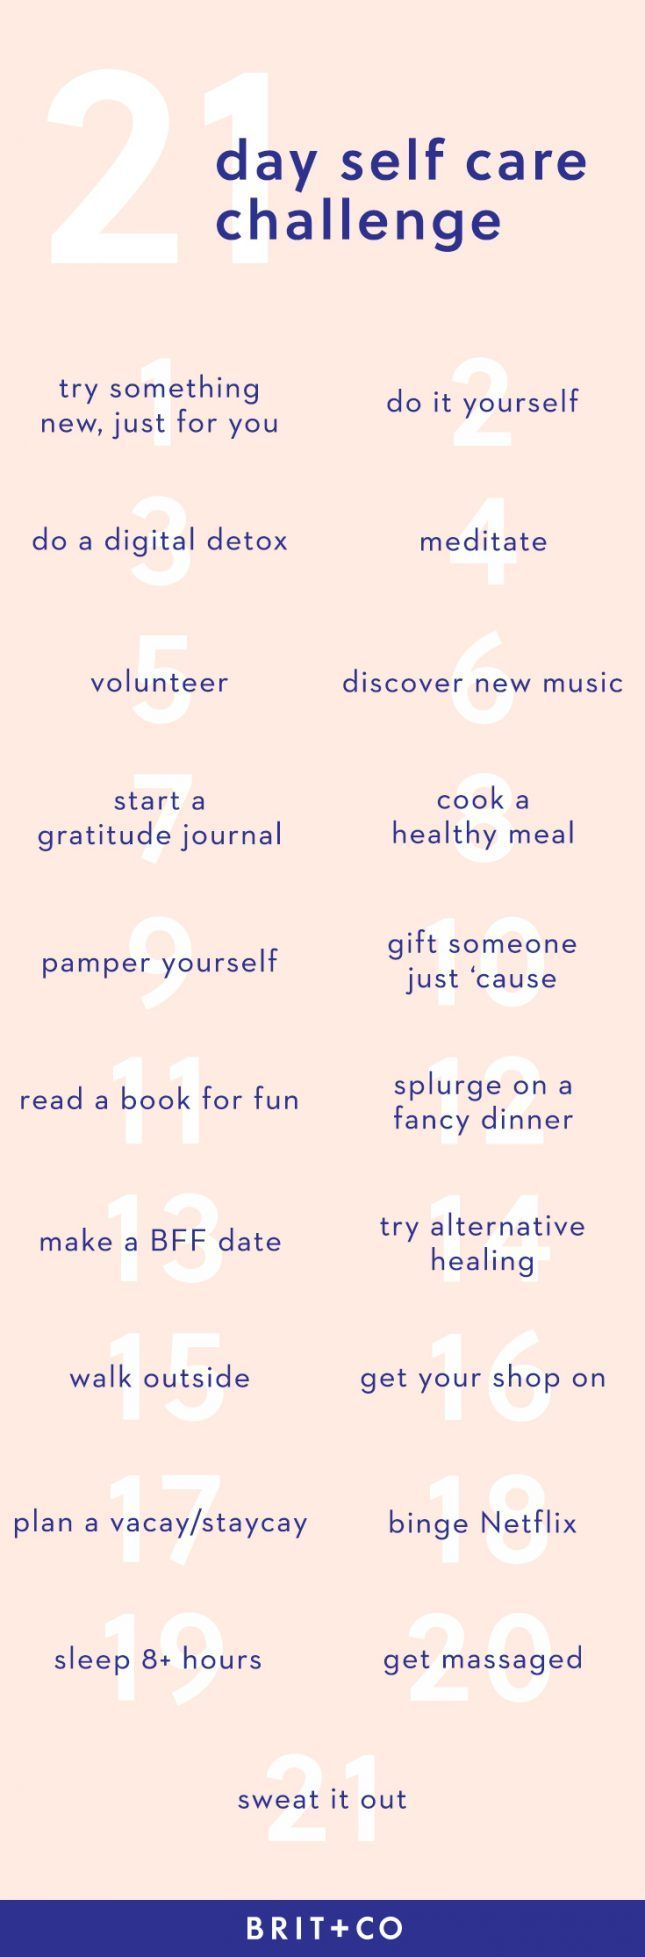 Be your best you with this simple 21-day self-care challenge.